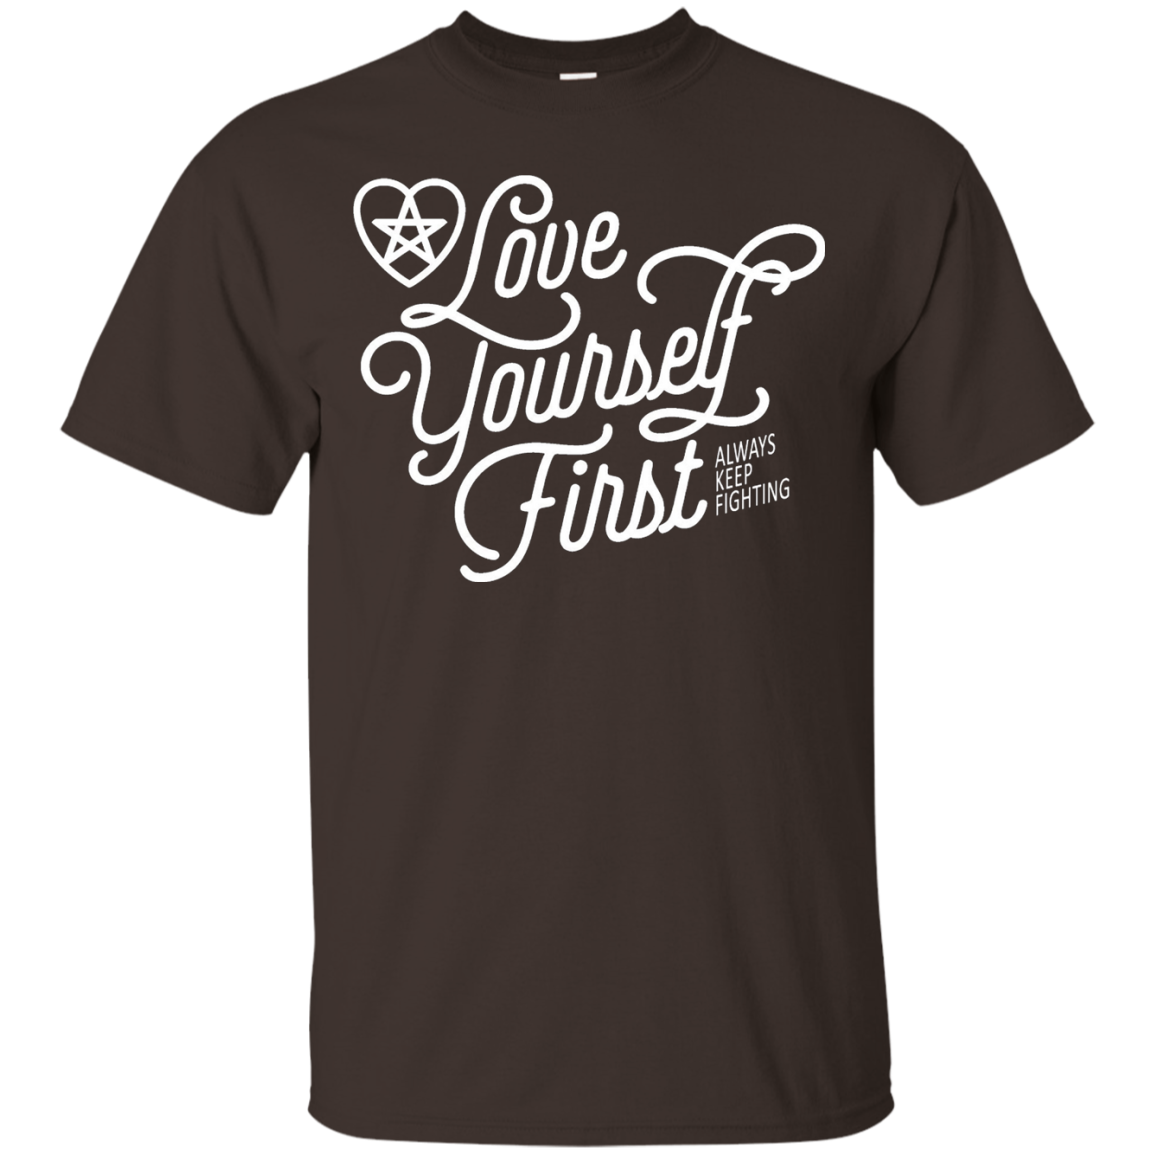 Love Yourself First Always Keep Fighting T-Shirt